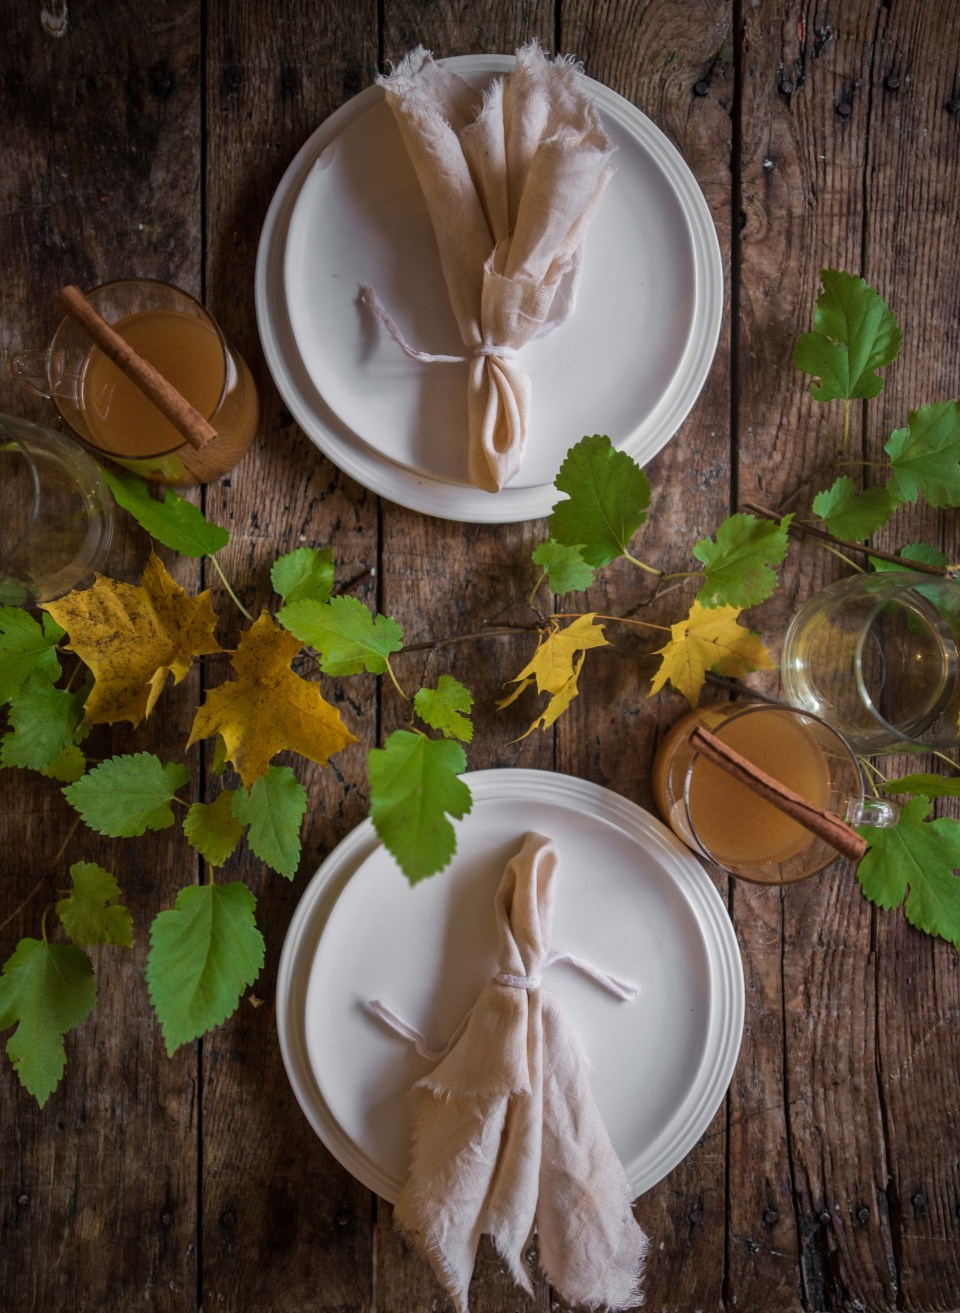 Leaf Dyed Linen Napkins made using Homemade Plant Dyes